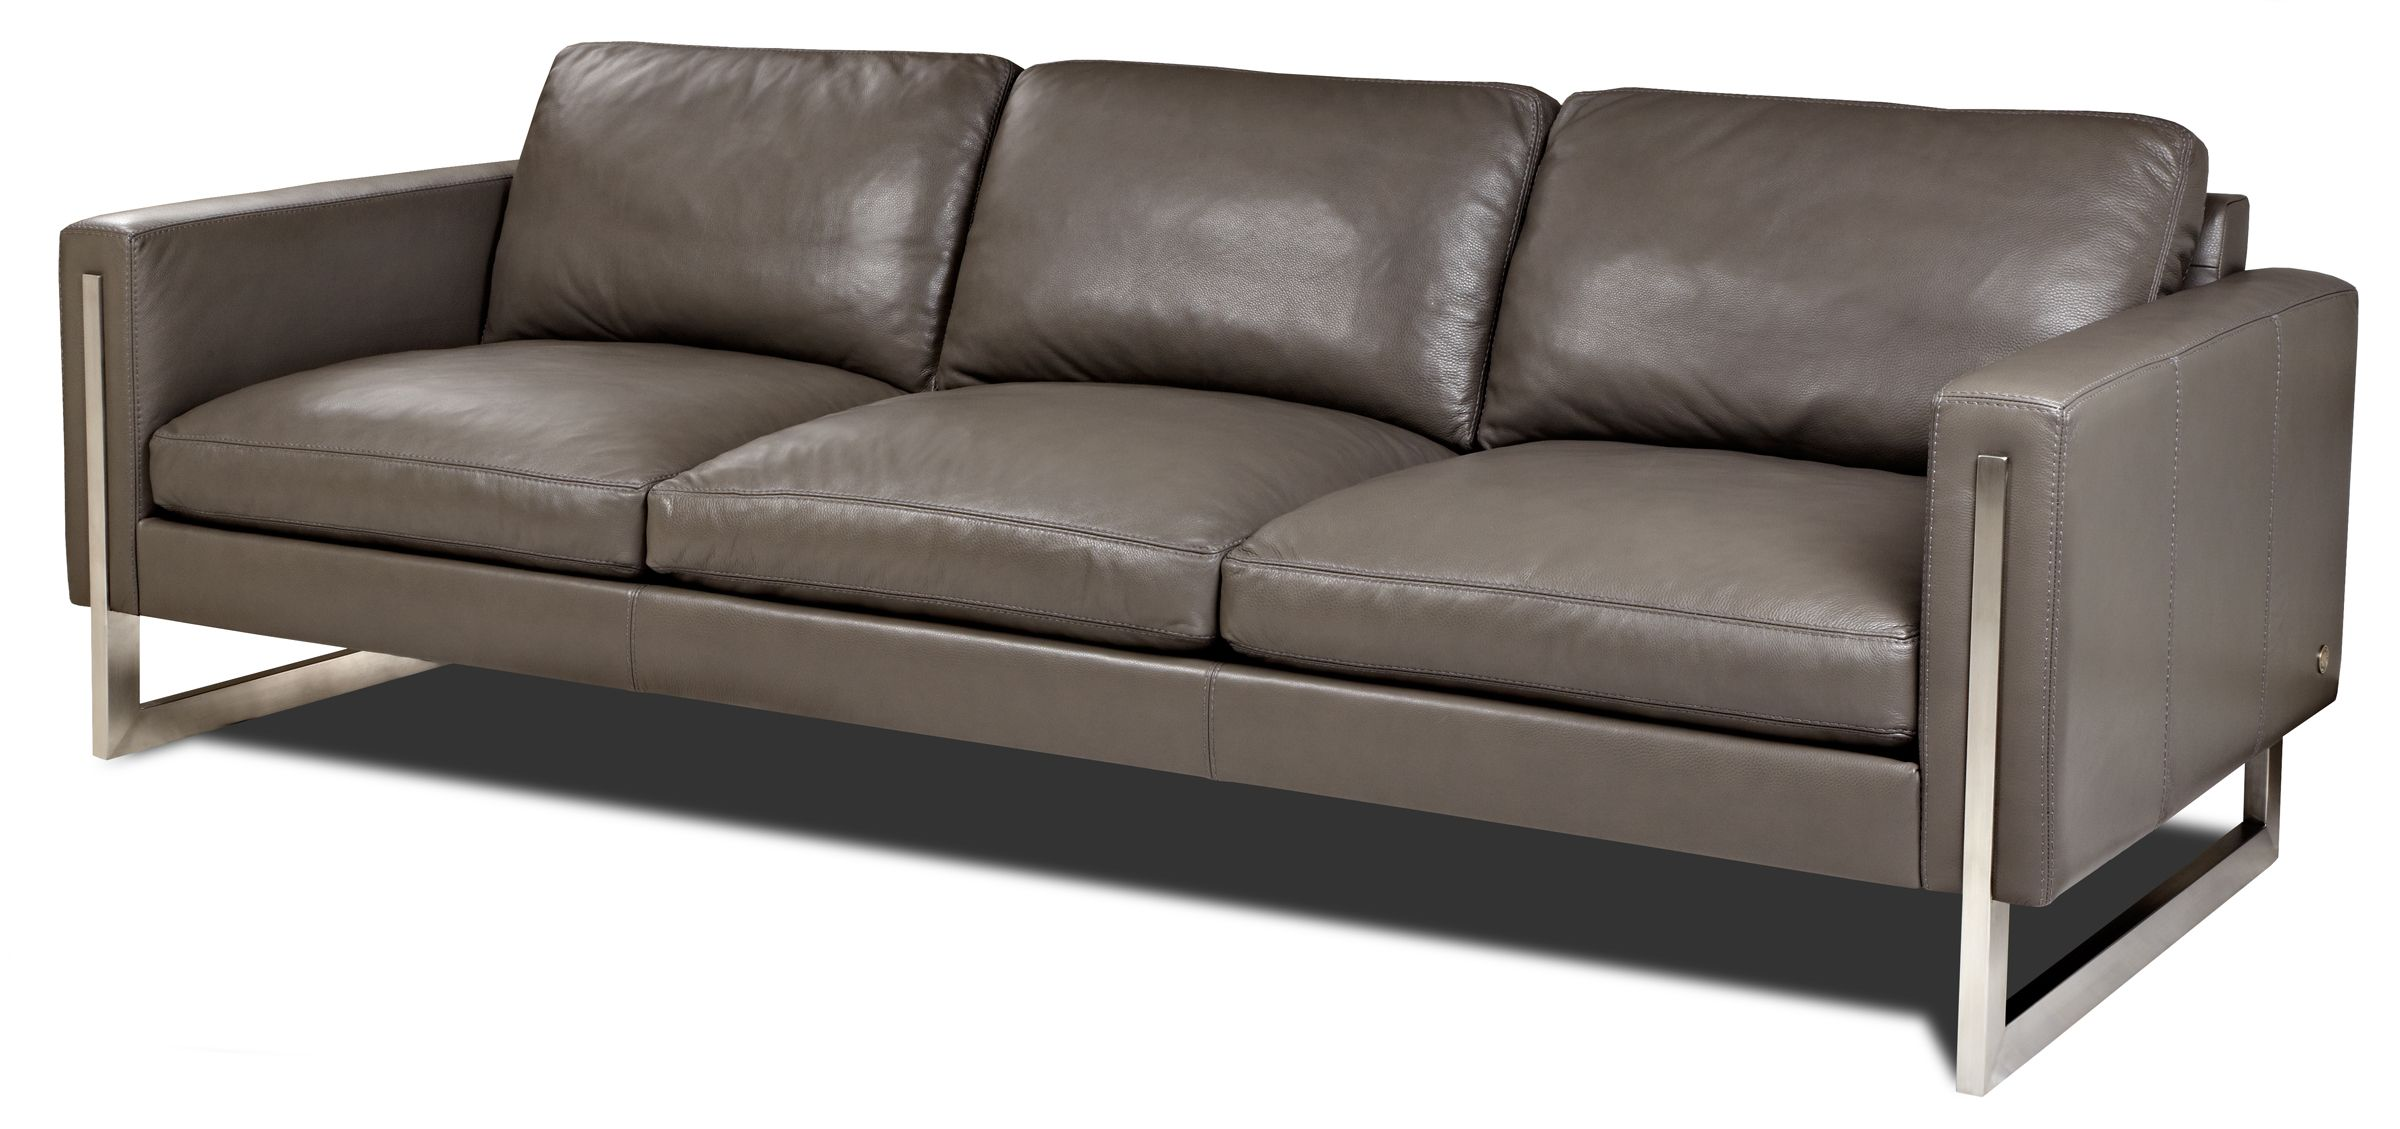 American Leather Savino Sofa With